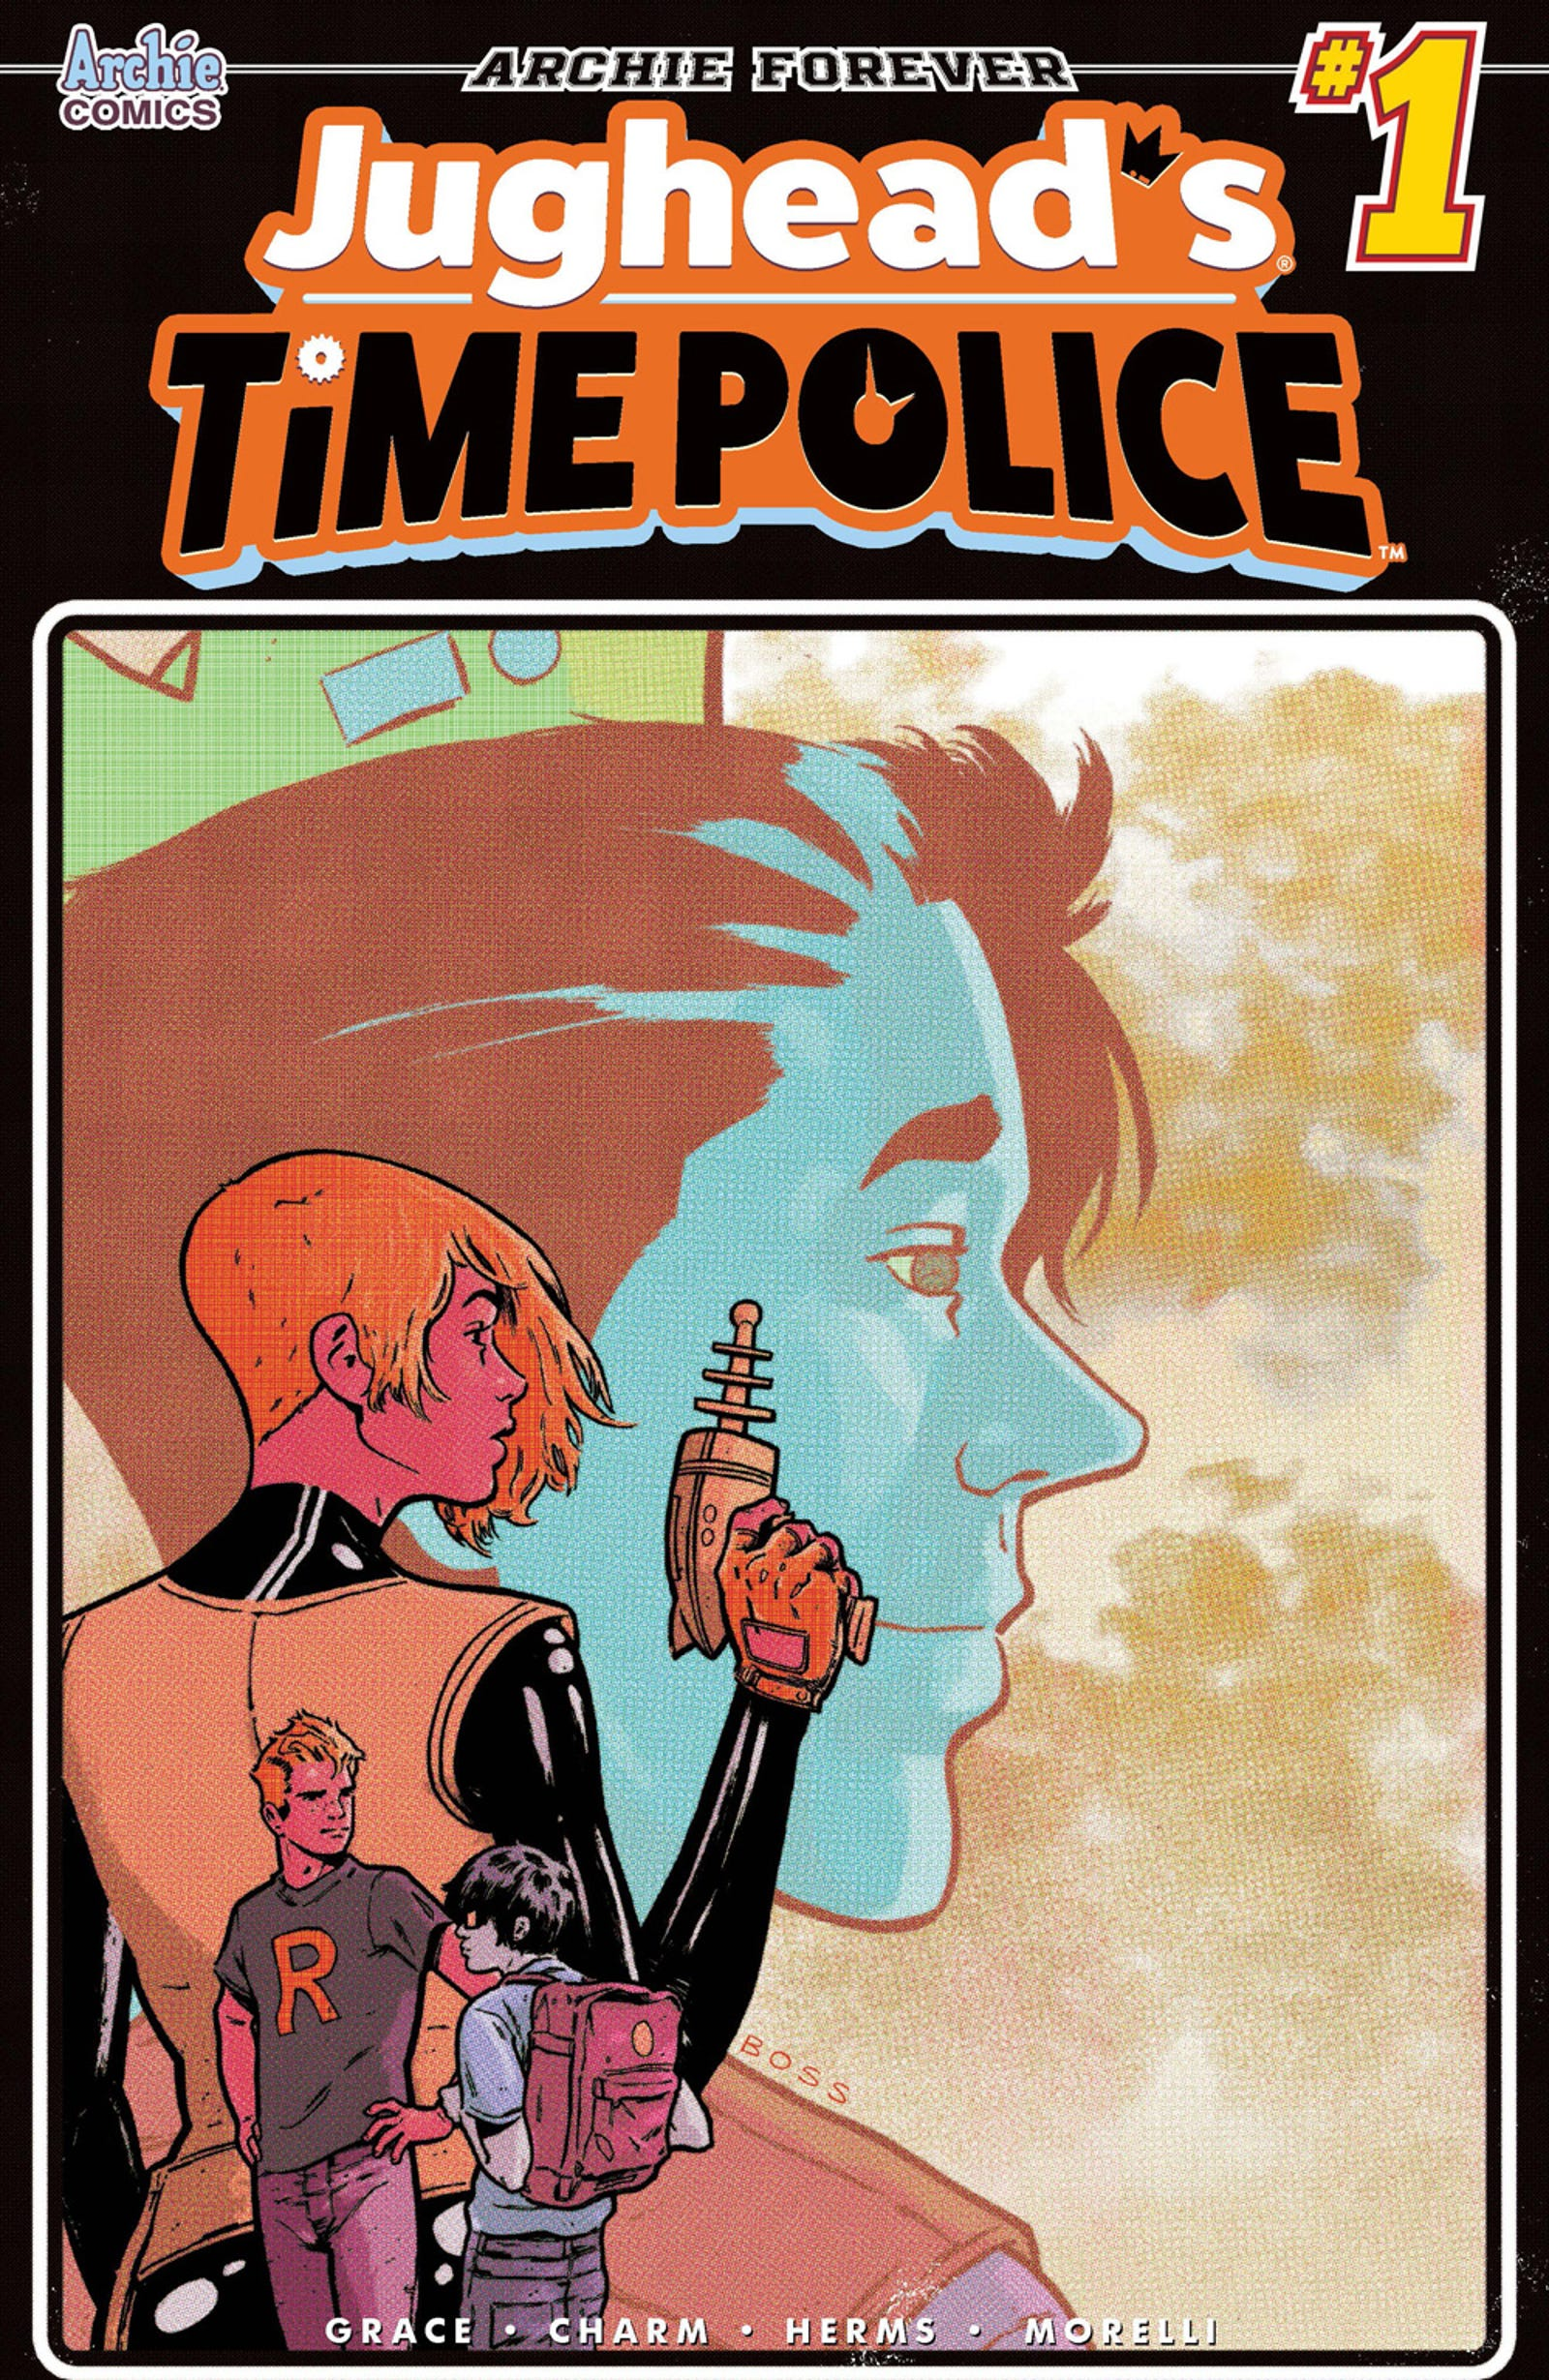 The variant covers for Time Police #1.